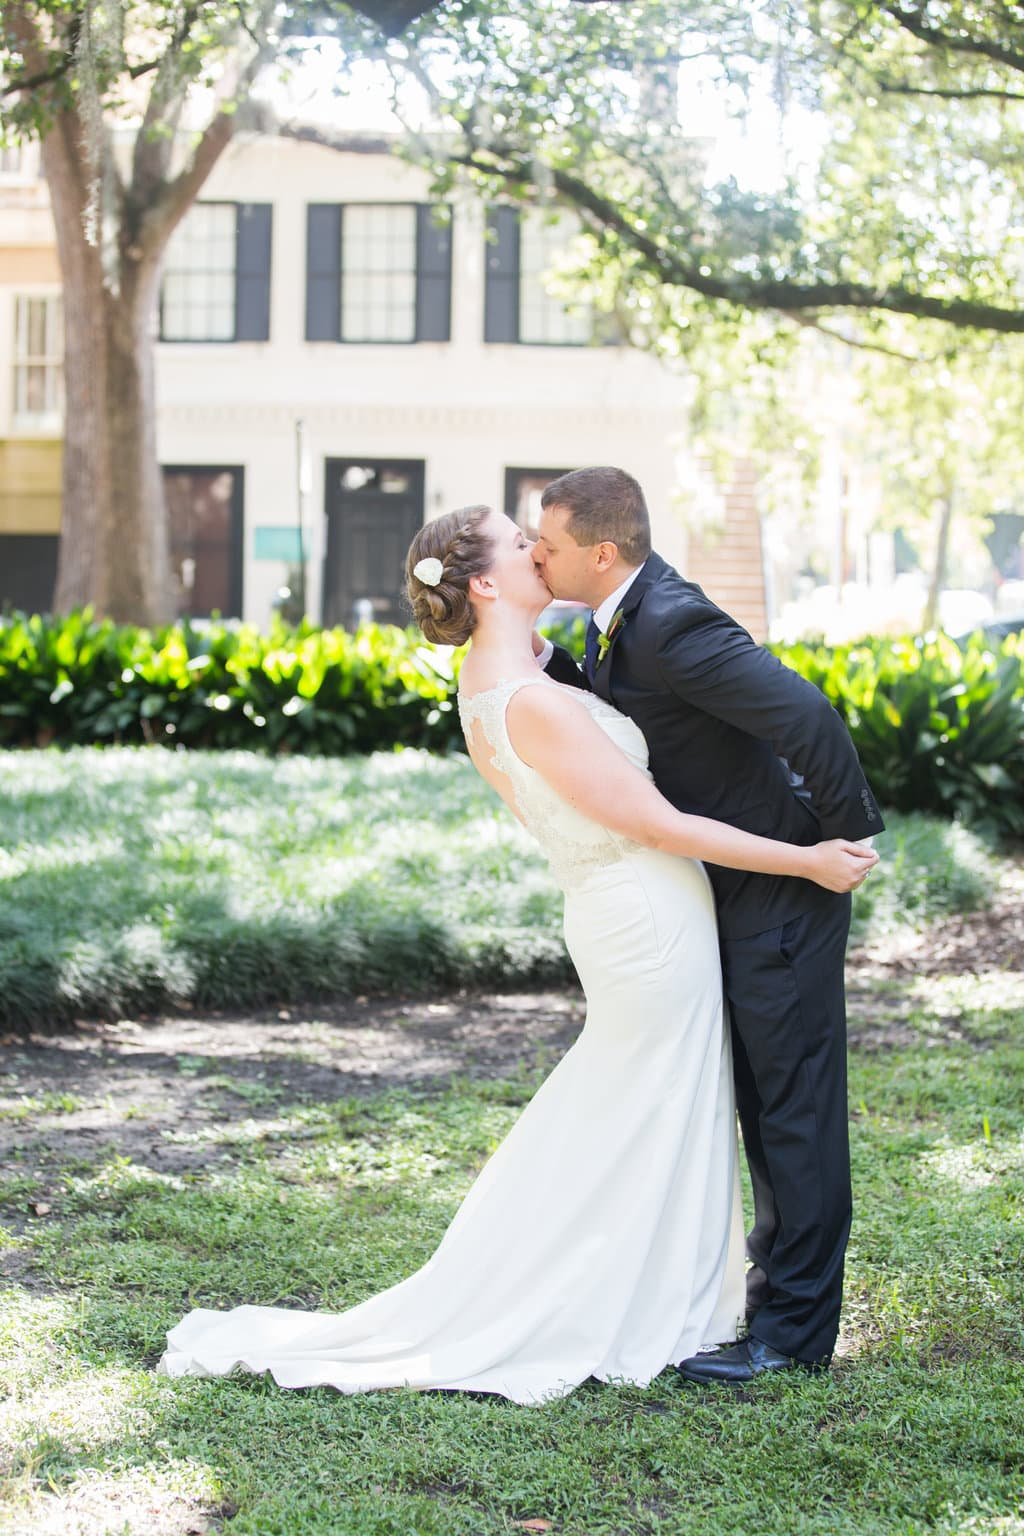 First kiss in Savannah, GA